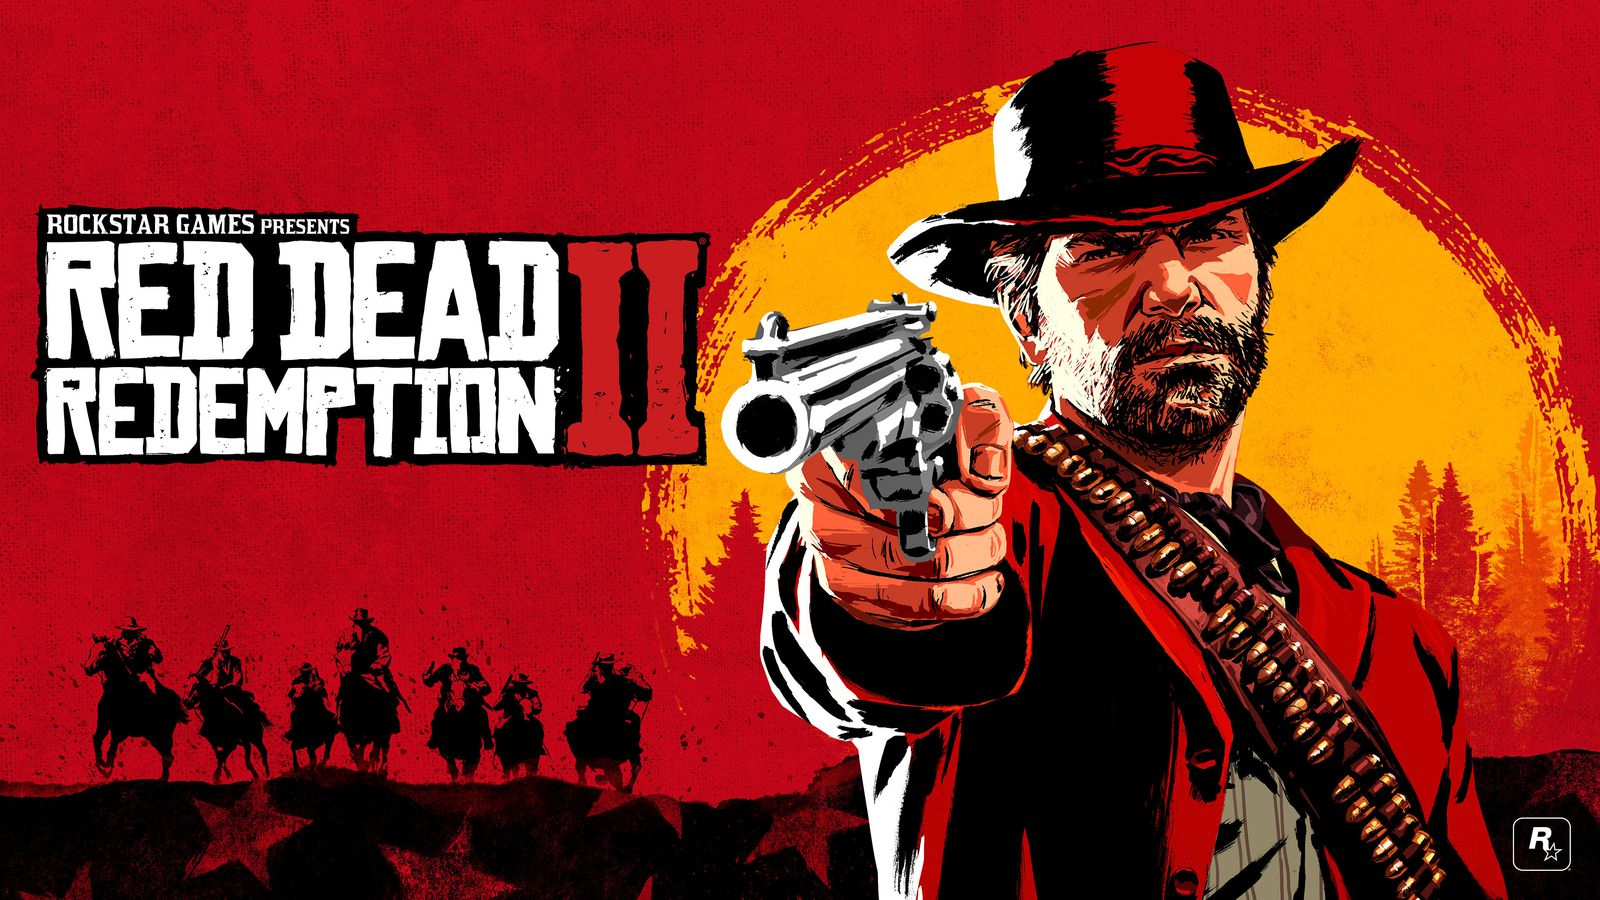 red dead redemption 2 'Red Dead Redemption 2' Sold $725 Million USD In Sales Within 3 Days rdr2 officialart 3840x2160